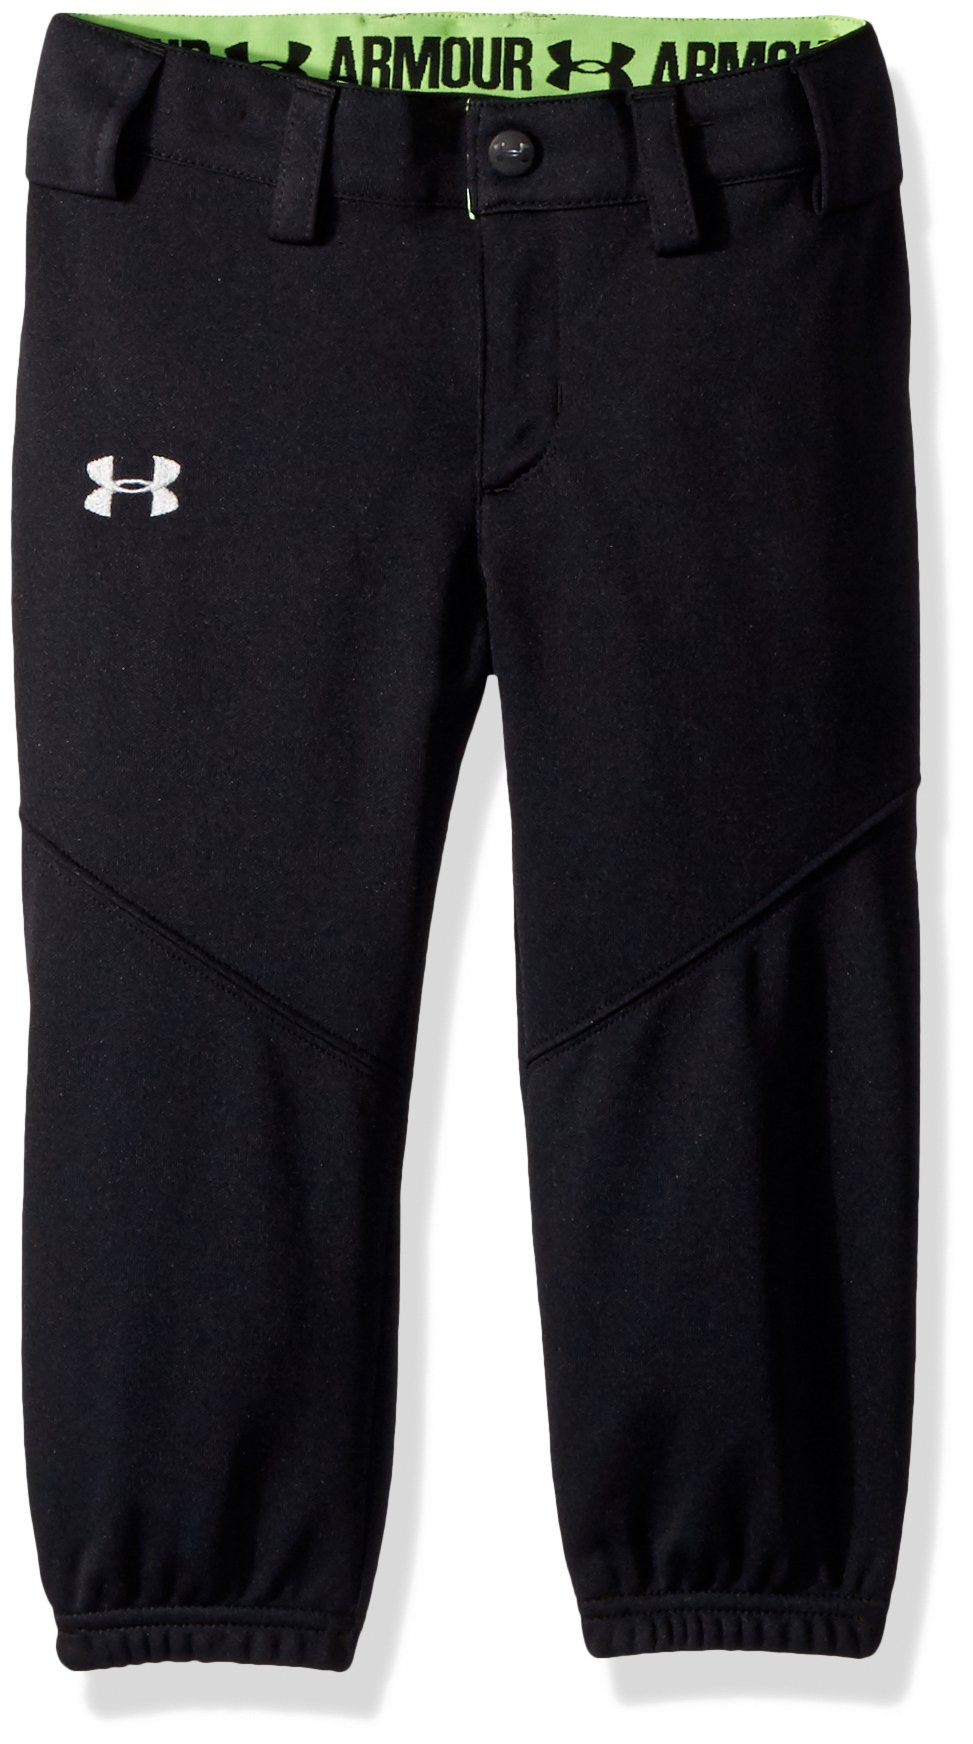 Under Armour Girls' Base Runner Softball Pants, Black (002)/Overcast Gray, Youth Medium by Under Armour (Image #1)